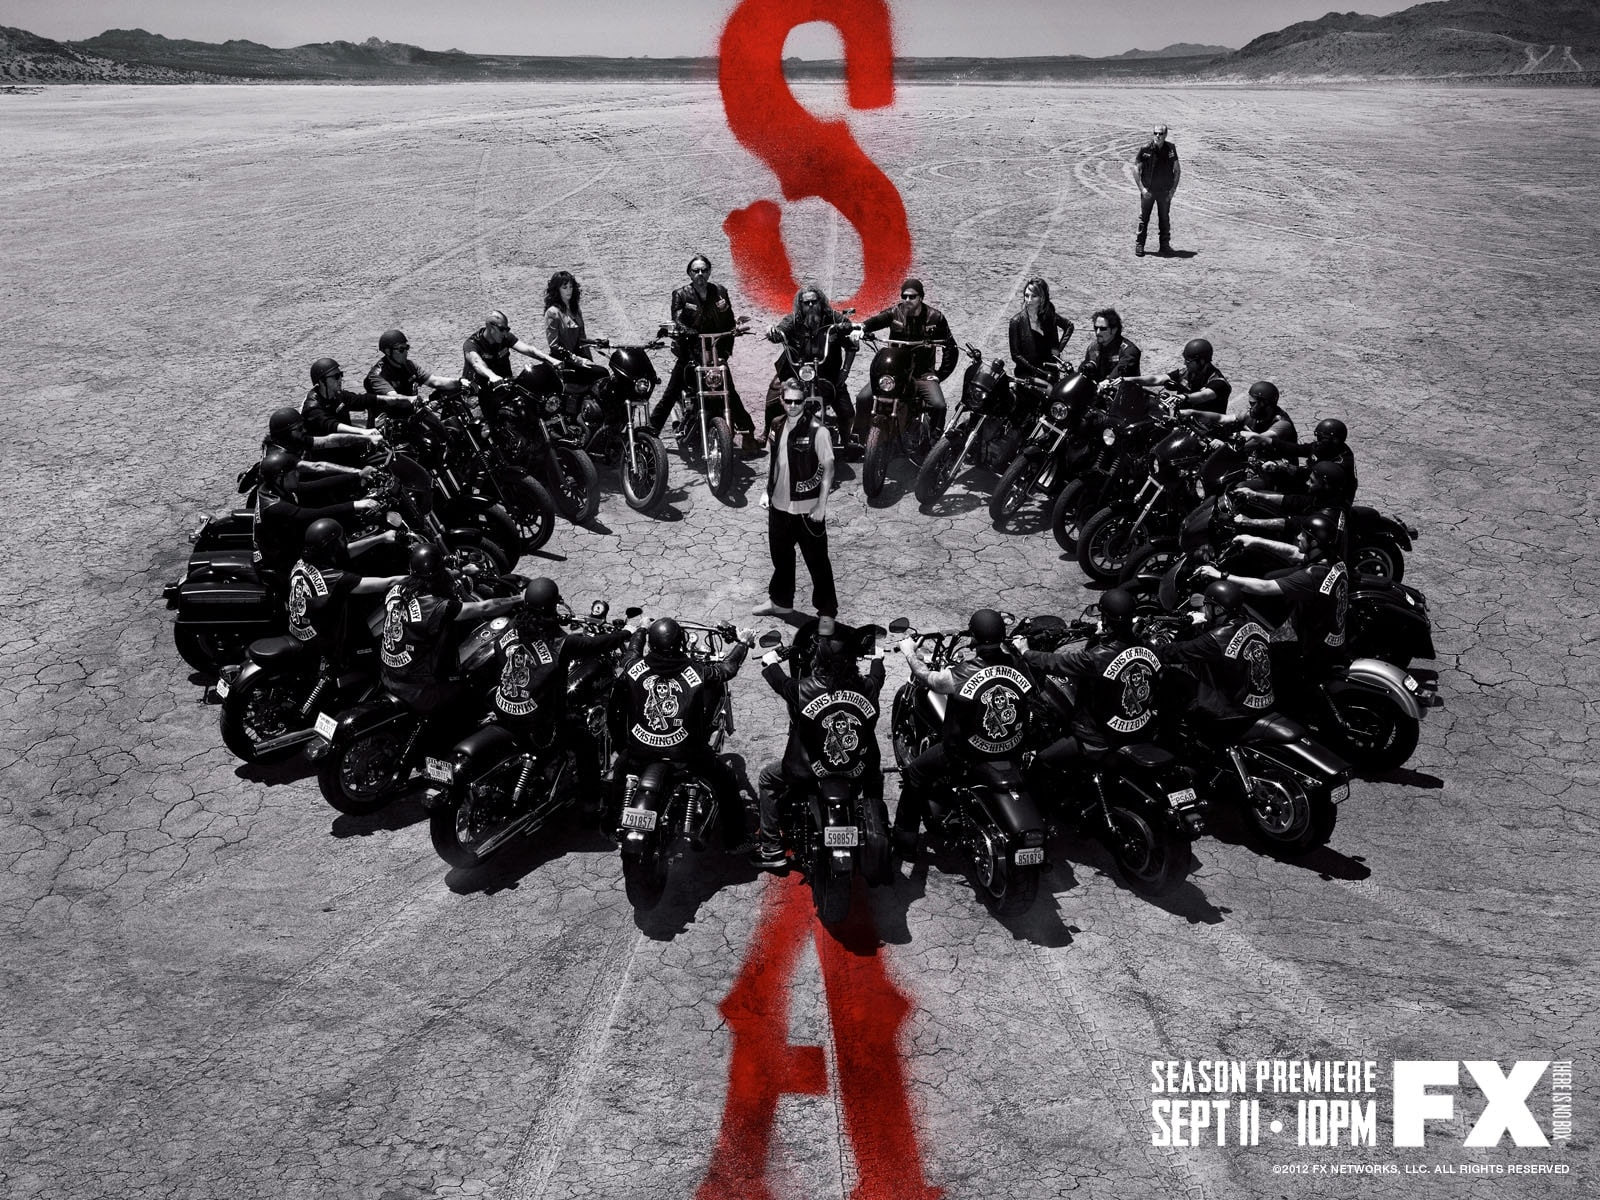 Sons-Of-Anarchy-sons-of-anarchy-32111948-1600-1200